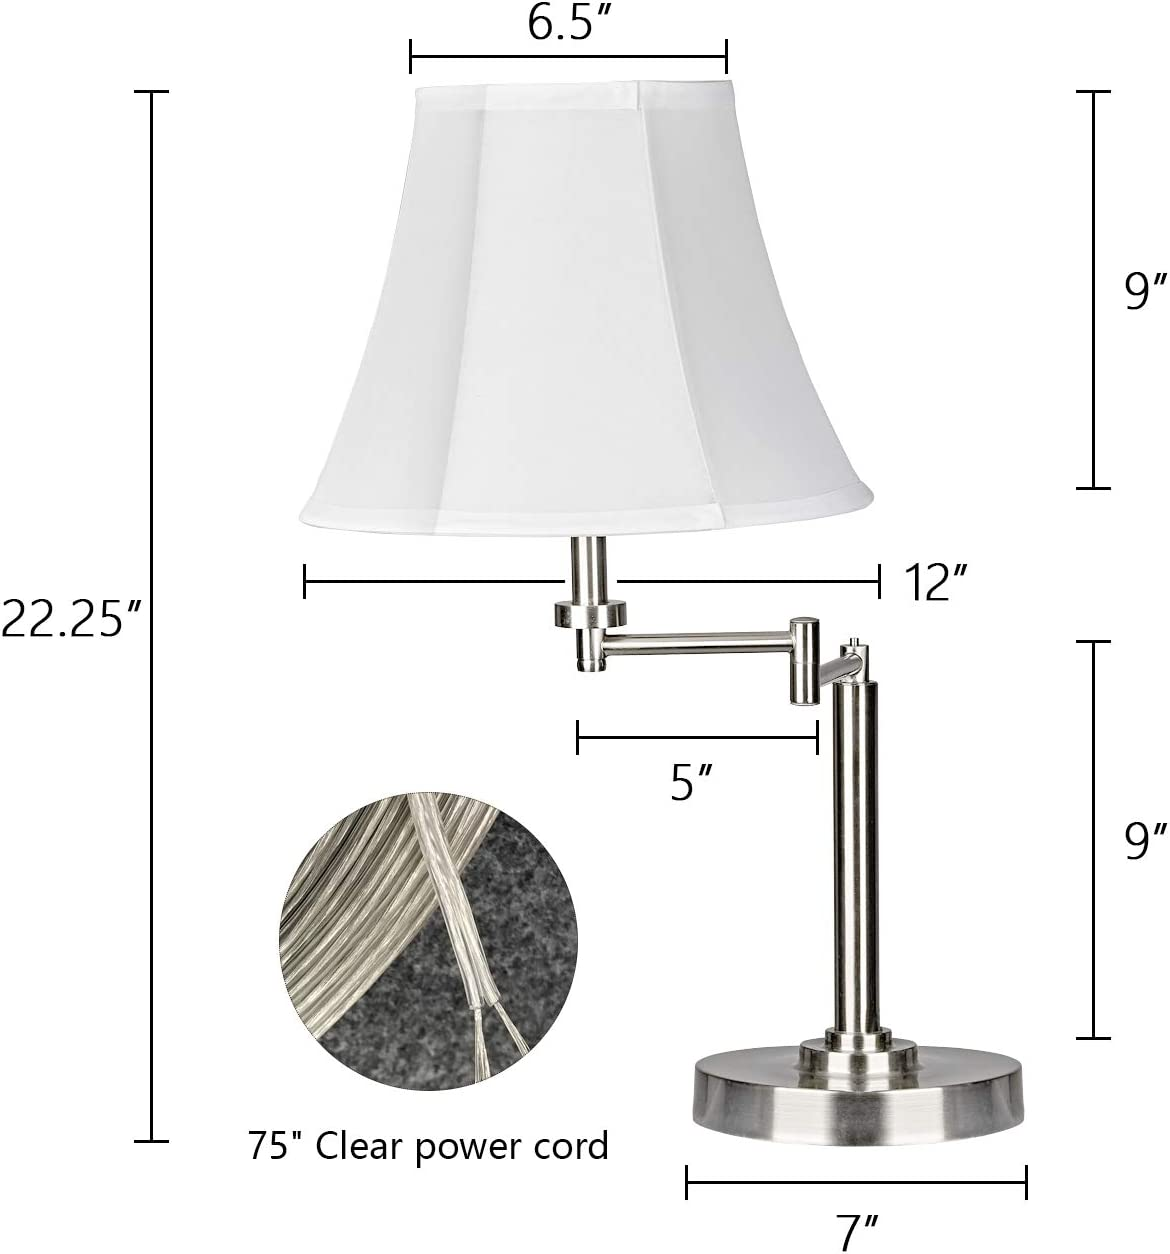 Motini 22 Modern Table Lamp With Swing Arm Adjustable Desk Lamp For Living Room Bedside Lamp Brushed Nickel Finish Amazon Com